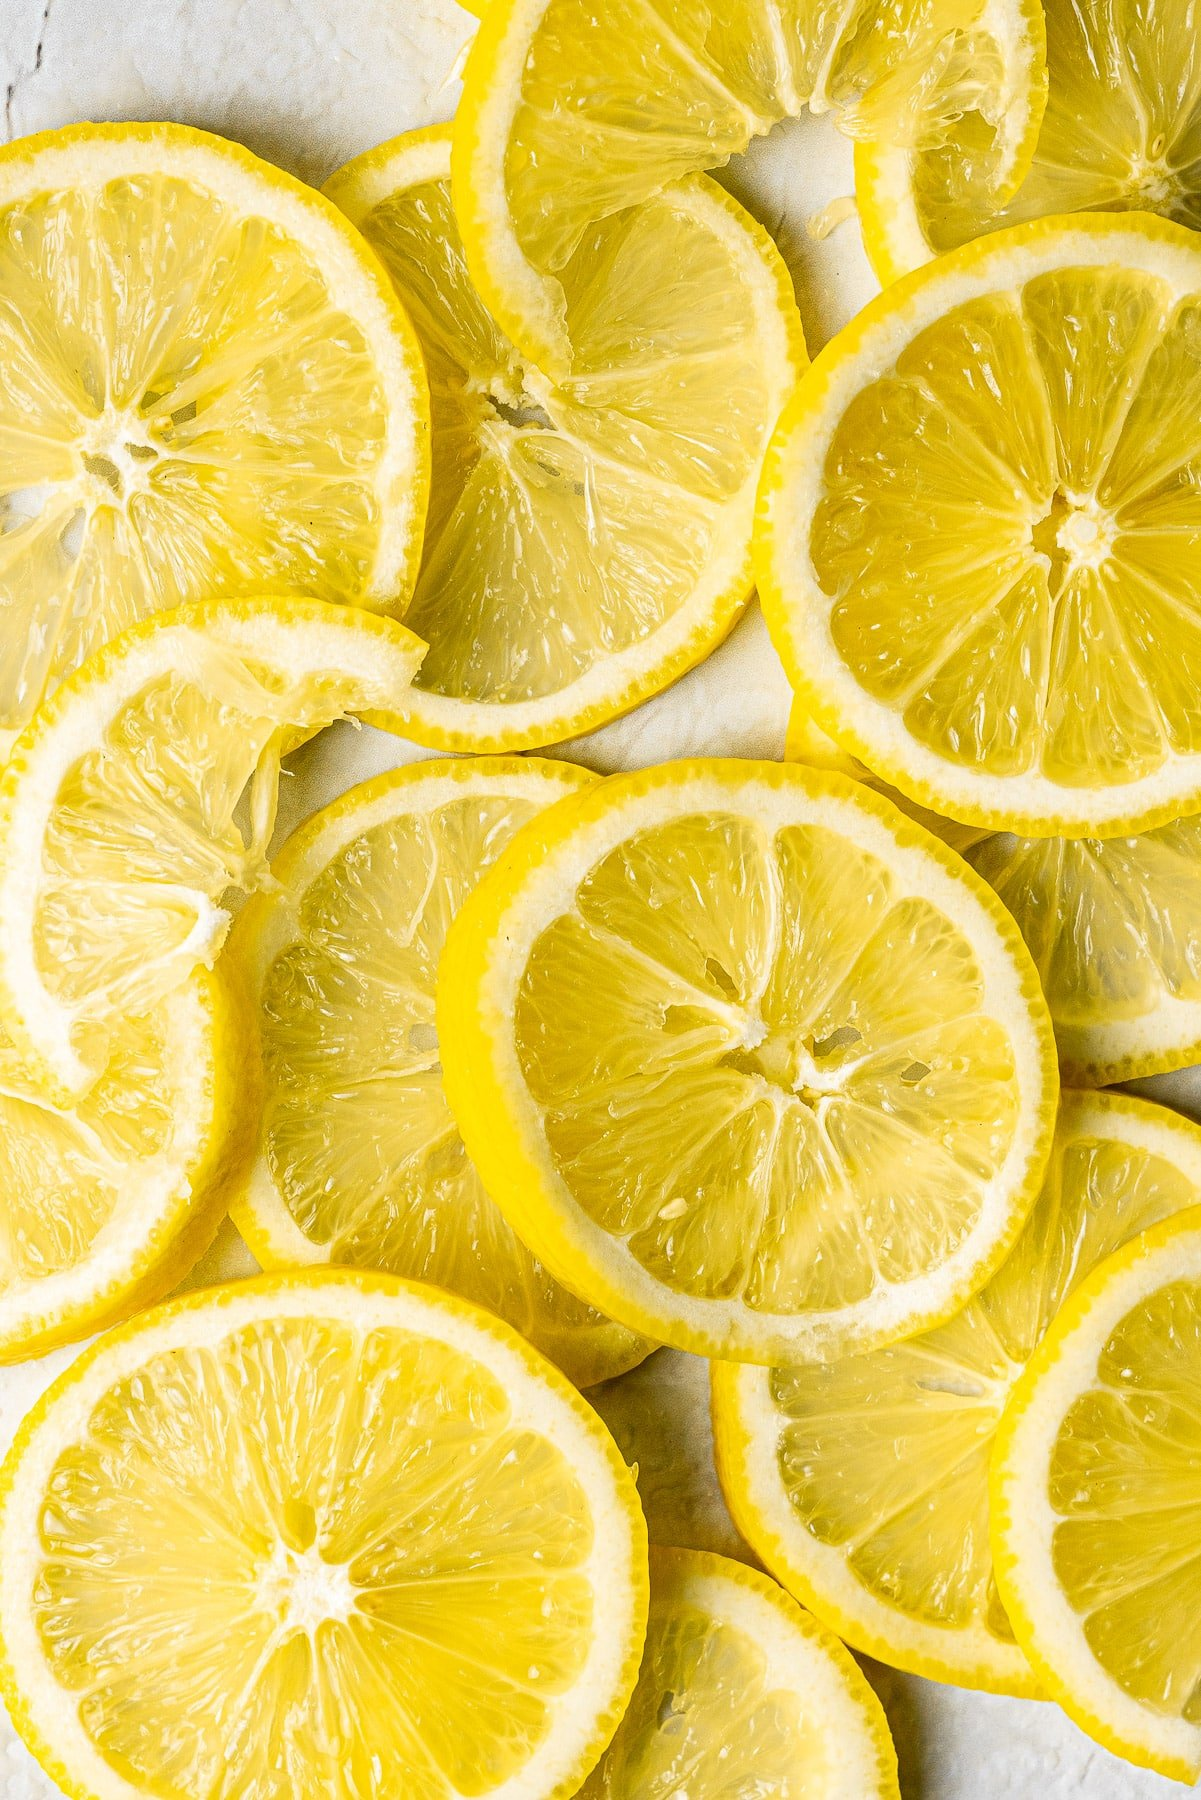 slices of lemon layered on top of each other